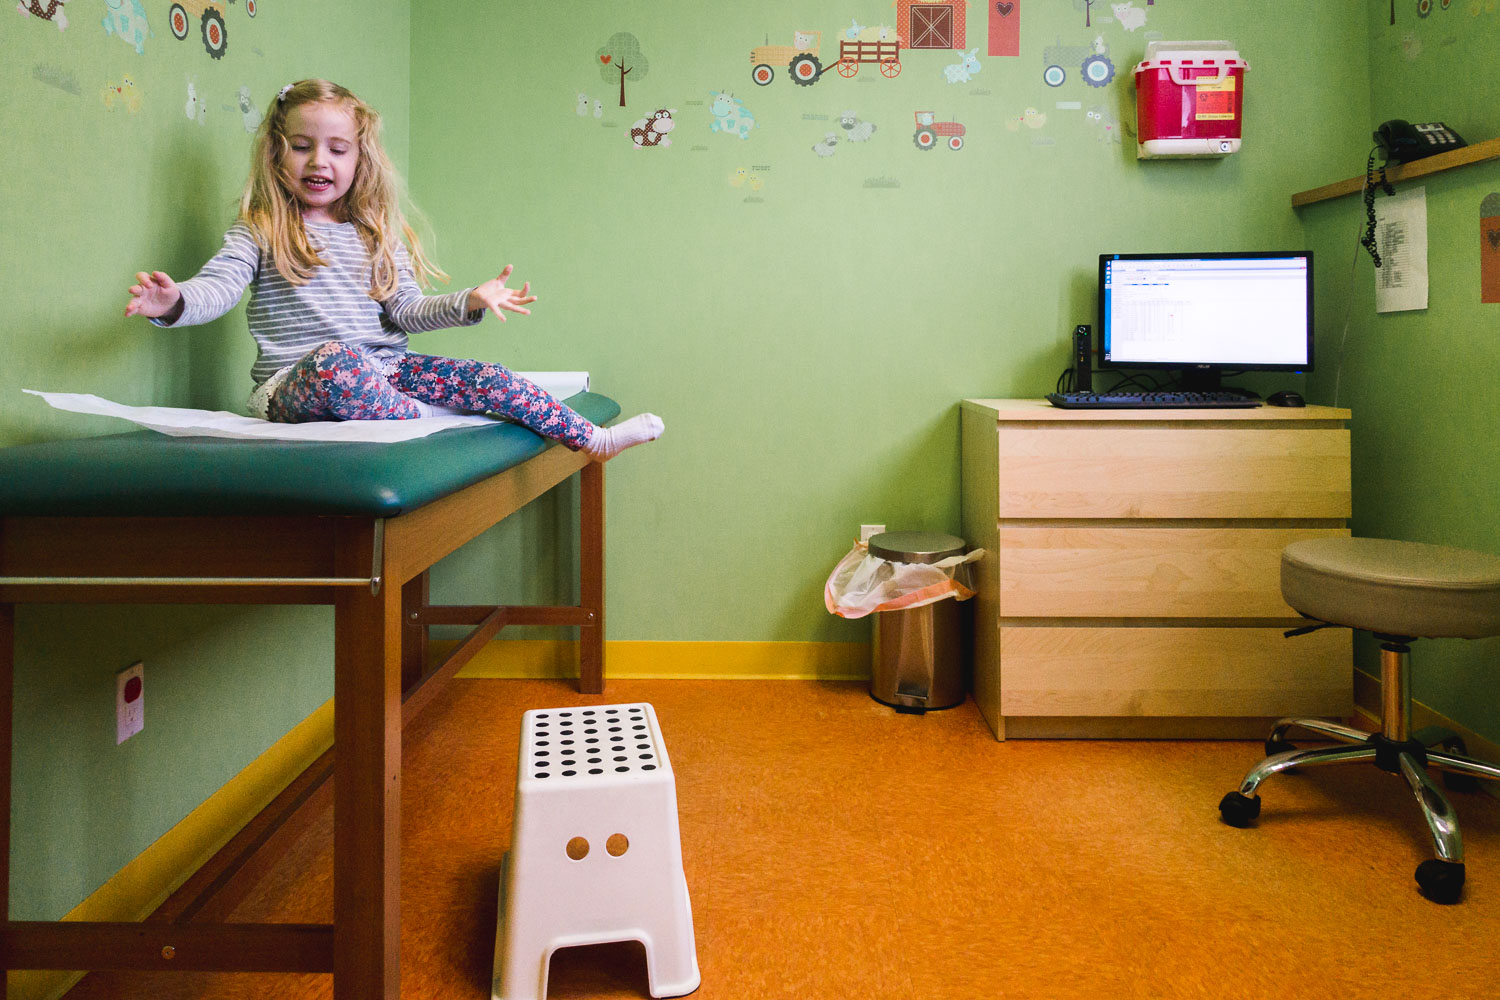 Little girl sits on an examining table in a doctor's office.